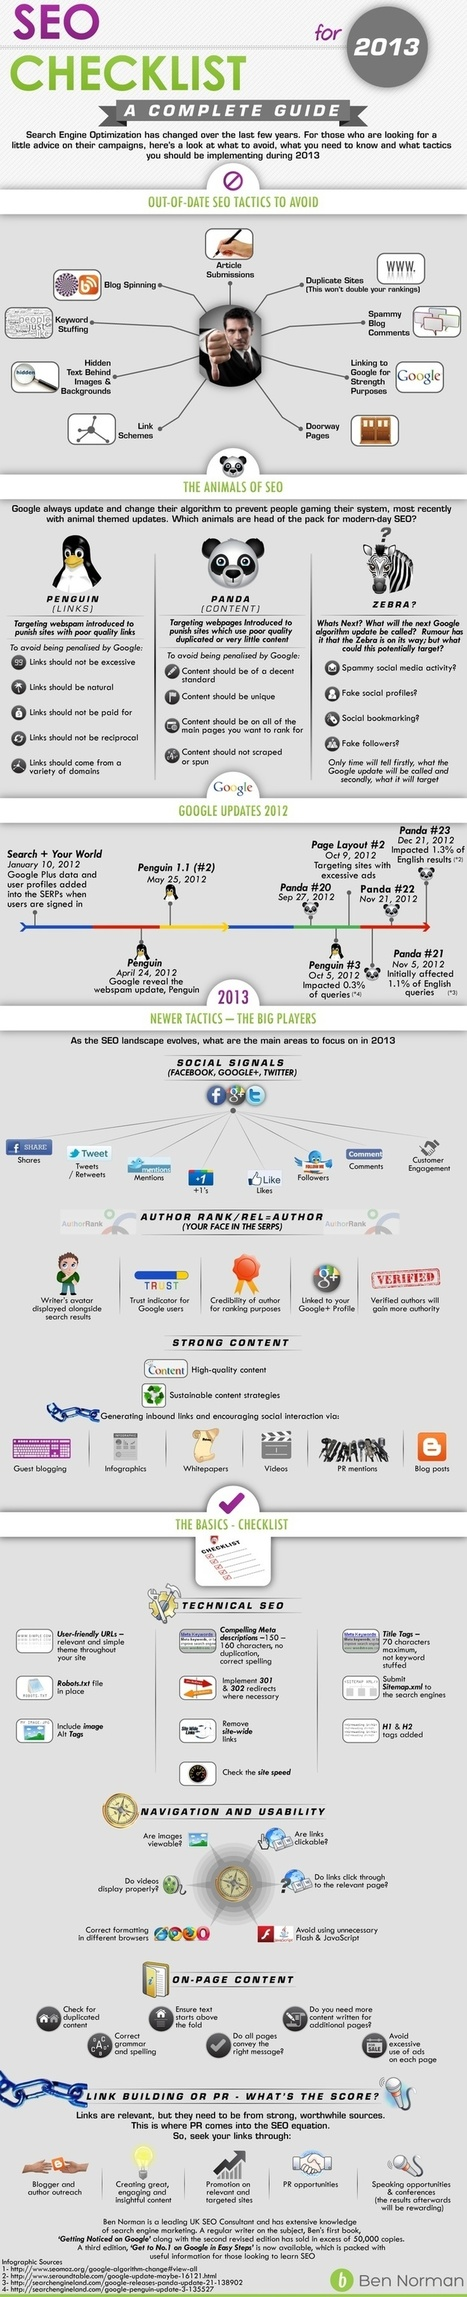 Seo Checklist for 2013 (Infographic) - Strategies and Practices to Follow - Seo Sandwitch Blog | SM | Scoop.it